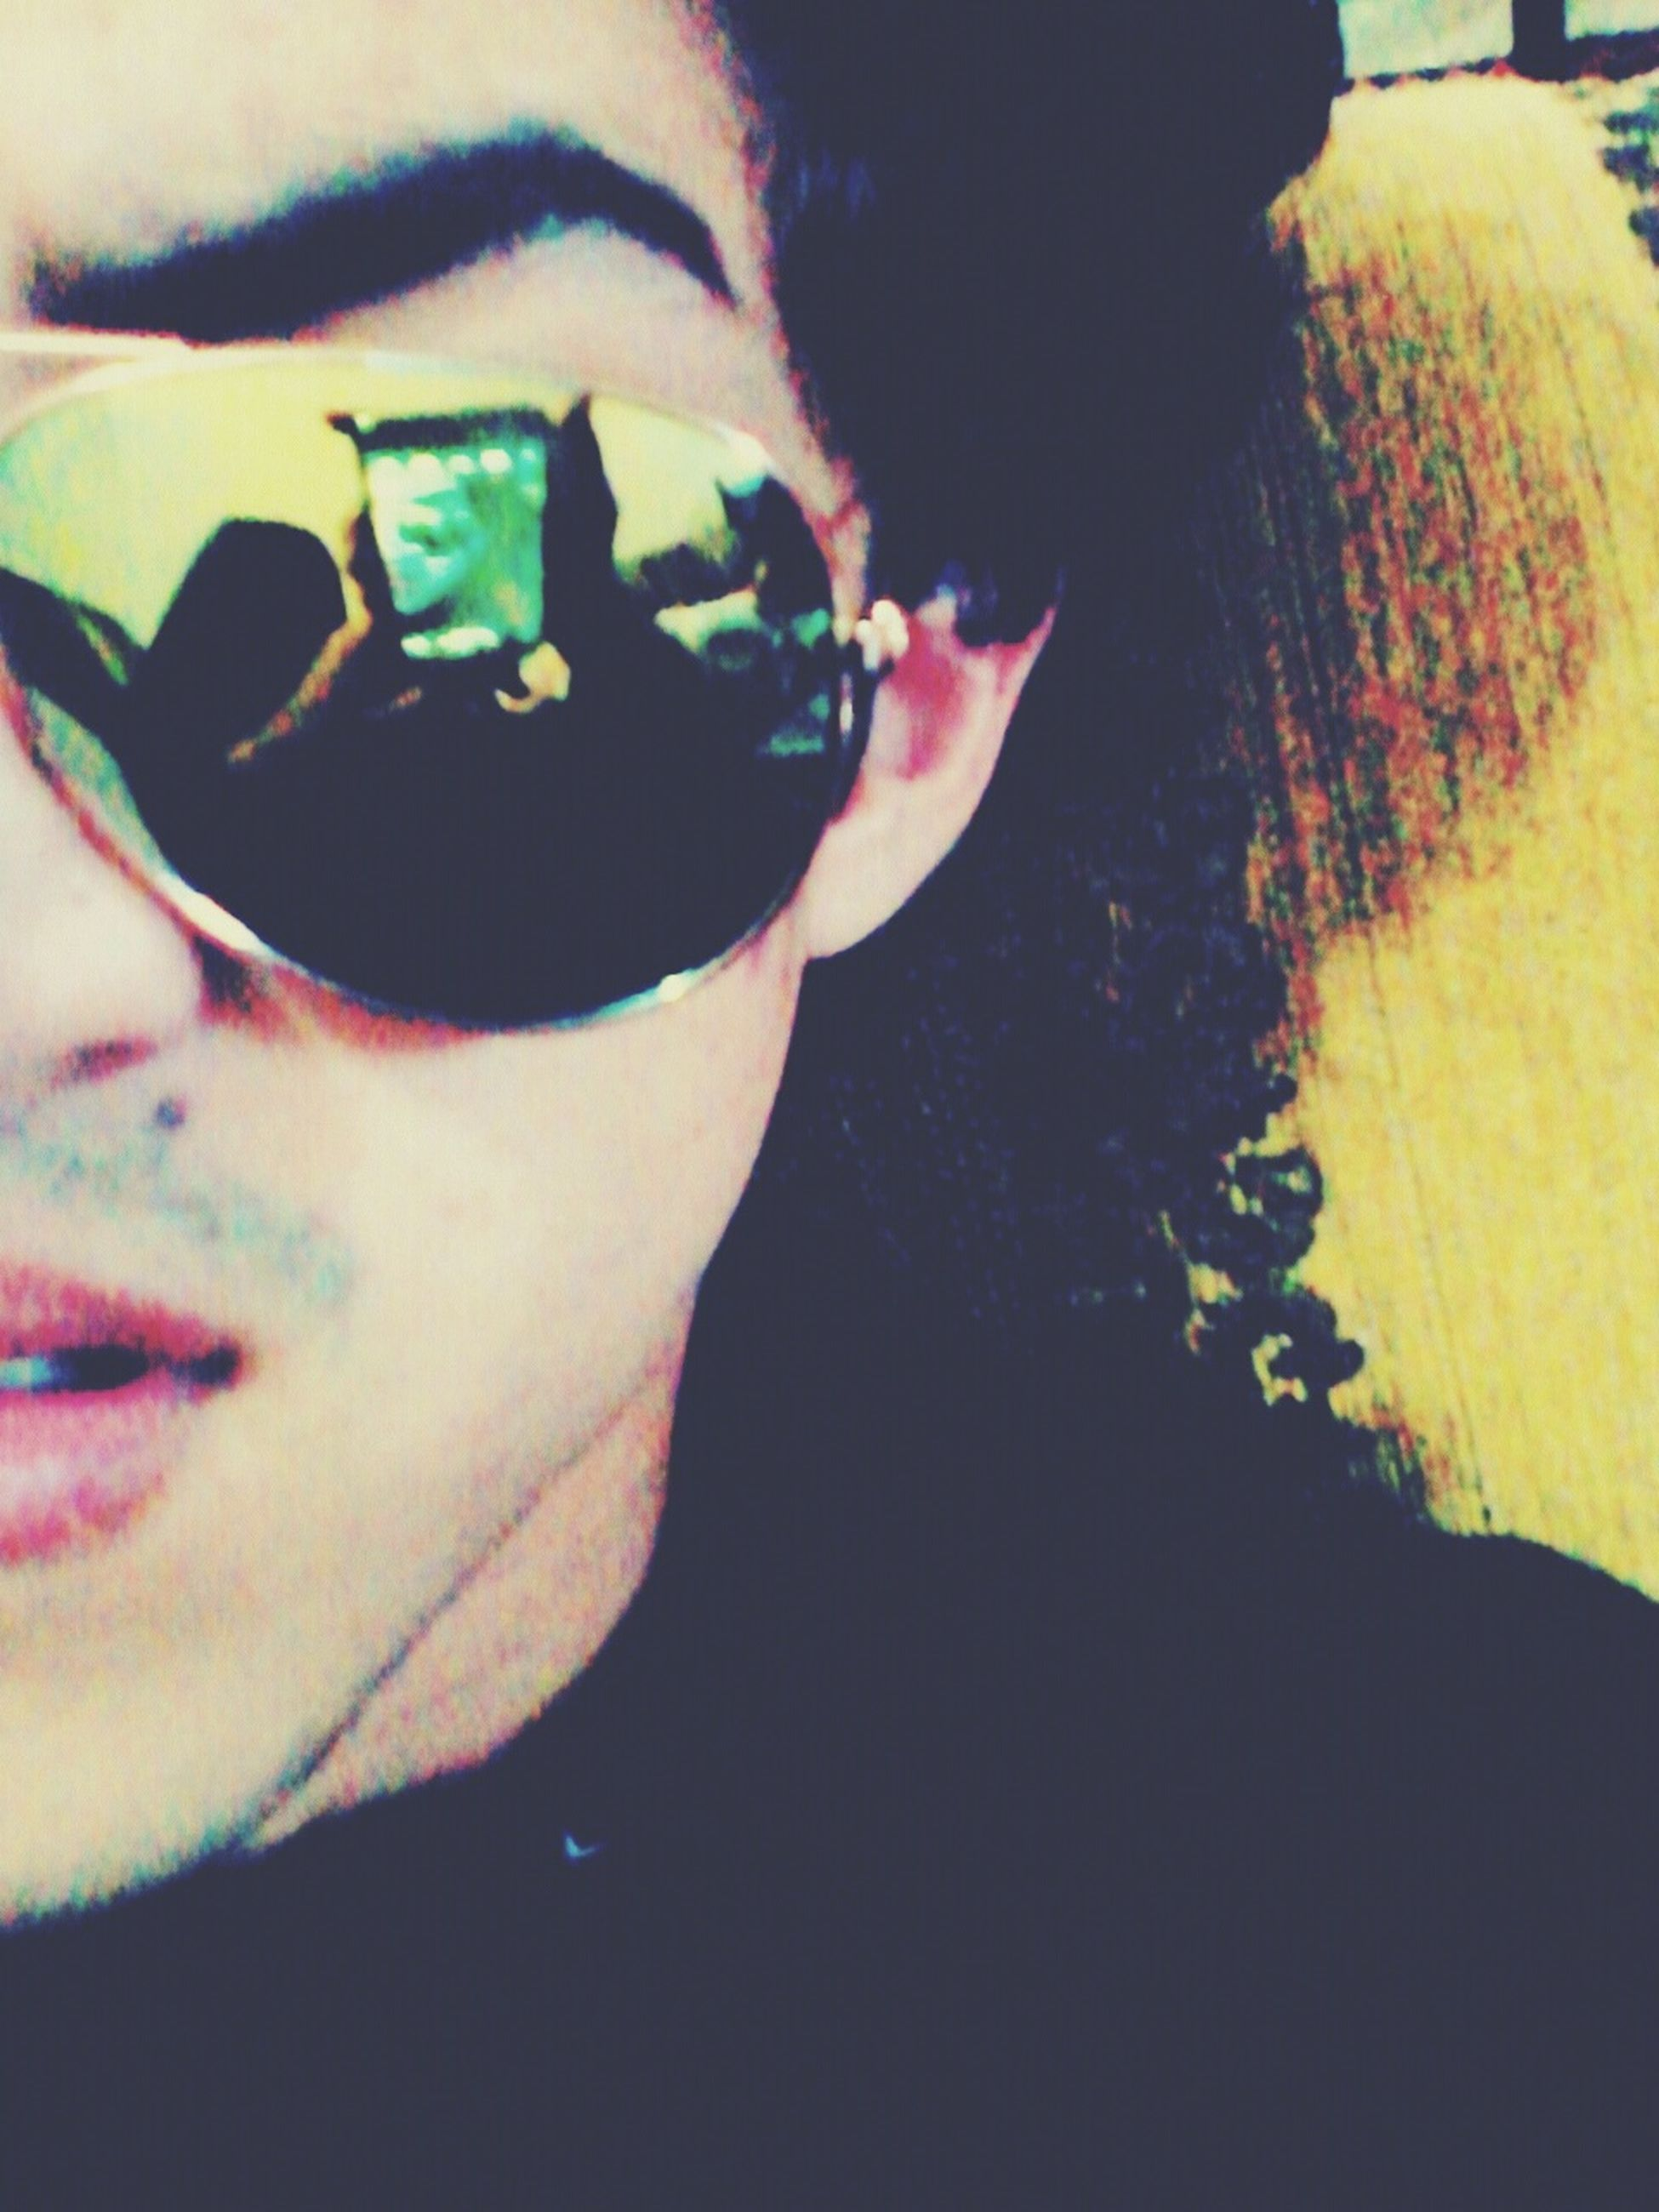 lifestyles, headshot, leisure activity, young adult, person, close-up, indoors, holding, young men, looking at camera, front view, human face, sunglasses, portrait, reflection, men